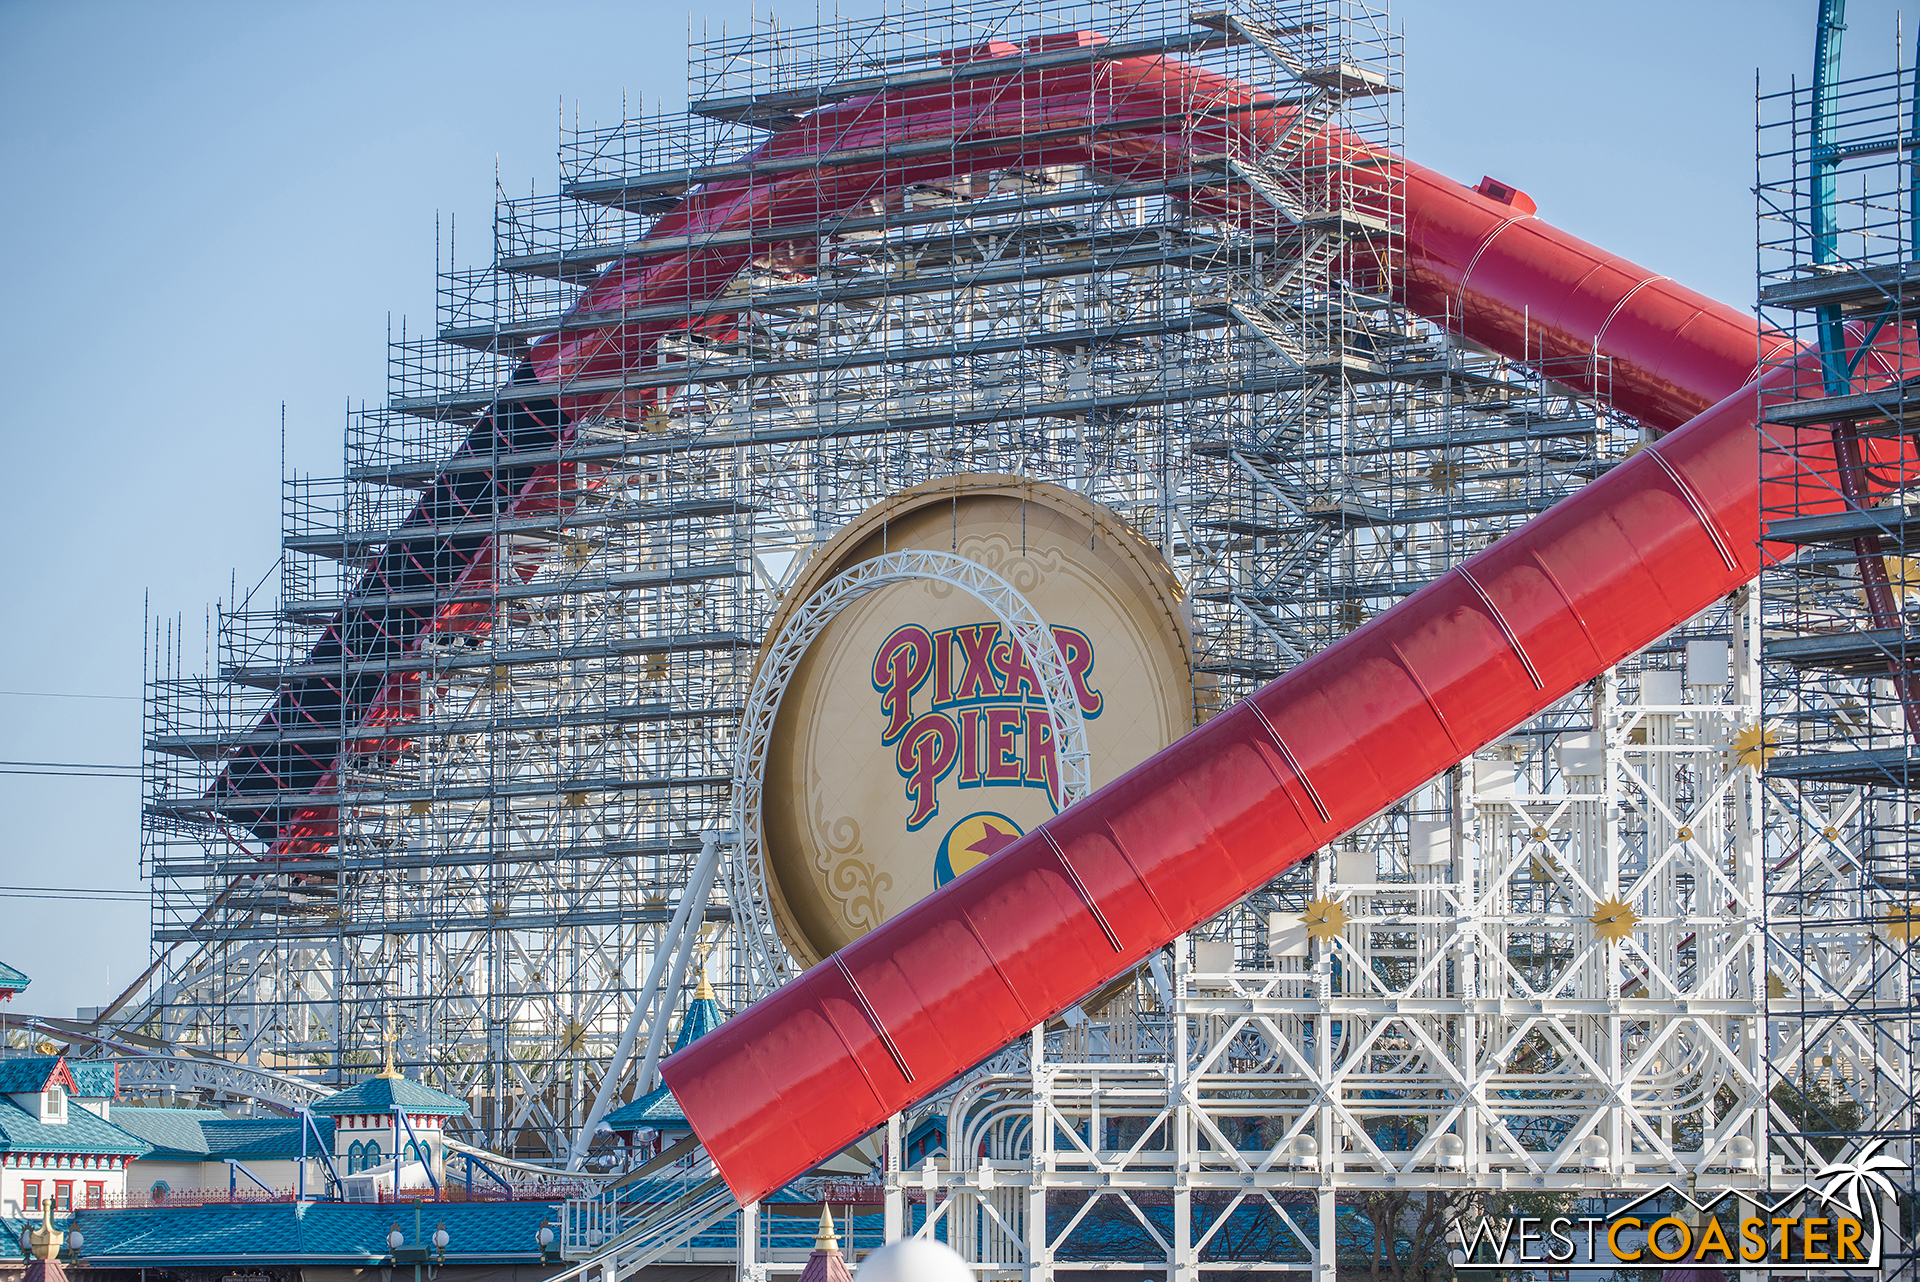 Here are a few close-up's of the Incredicoaster.